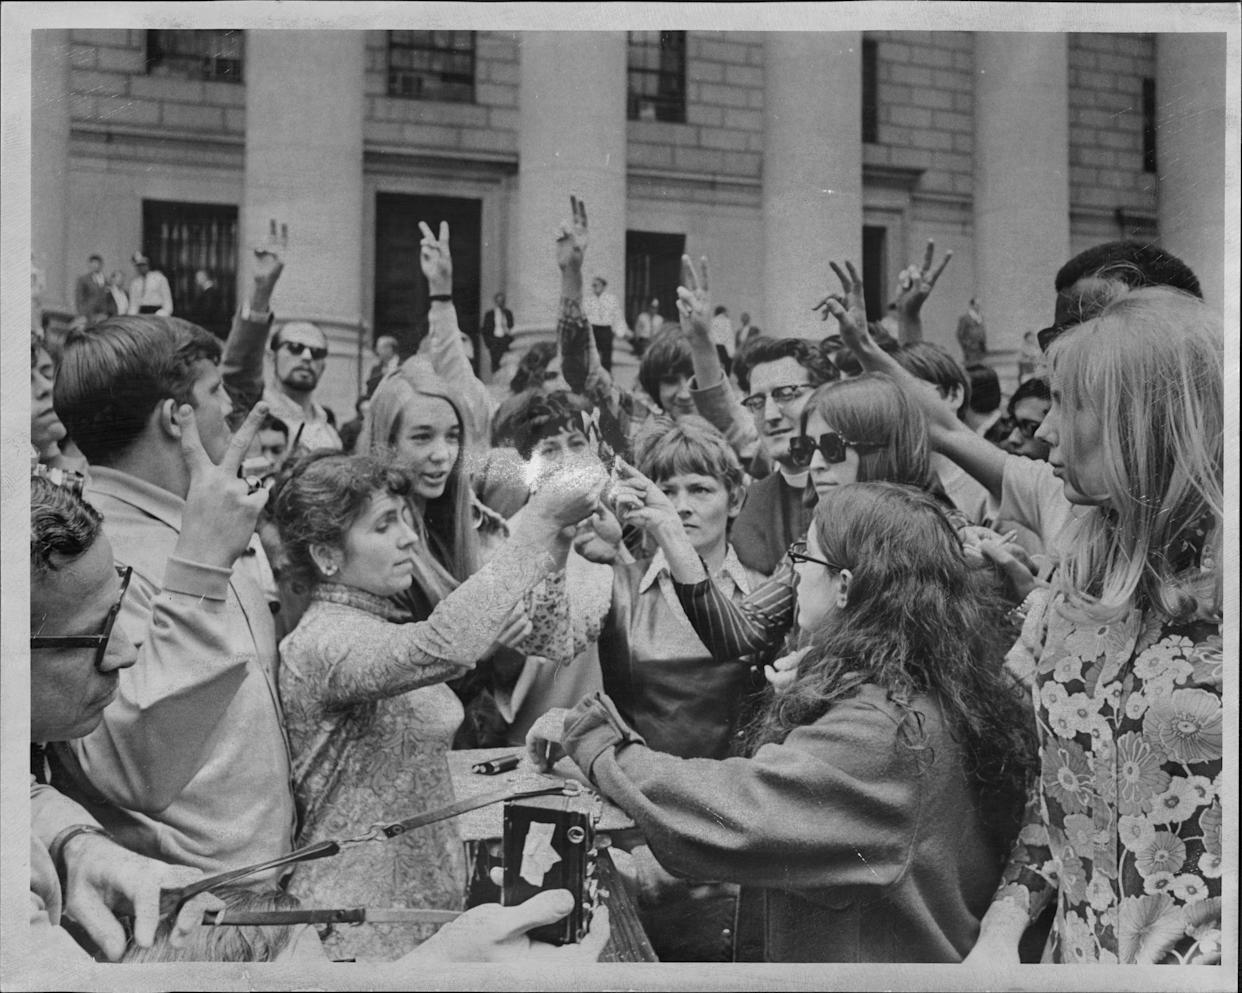 Several women protesters burn what they say are draft cards belonging to friend in a demonstration at the Federal court today in support of Dr. Benjamin Spock. Spock and three others were convicted in Boston Tuesday of conspiring to counsel young men to evade the draft. June 20, 1968.